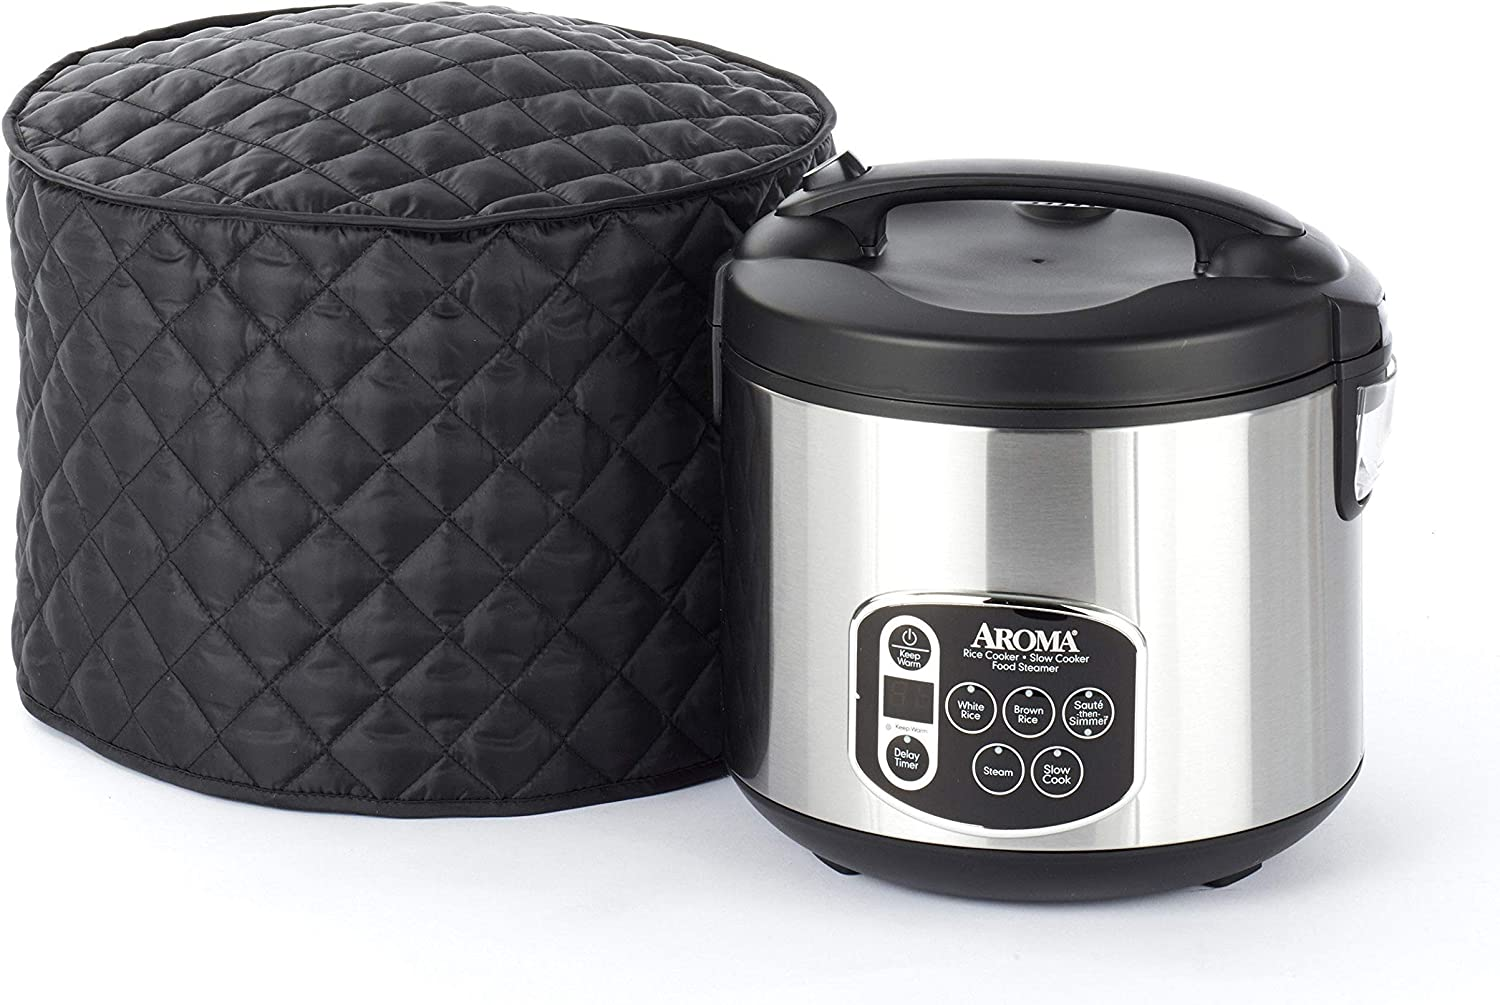 2 YR Warranty Year Around Protection Deep Fryer Cover CoverMates Black Diamond Collection 16W x 10D x 9H